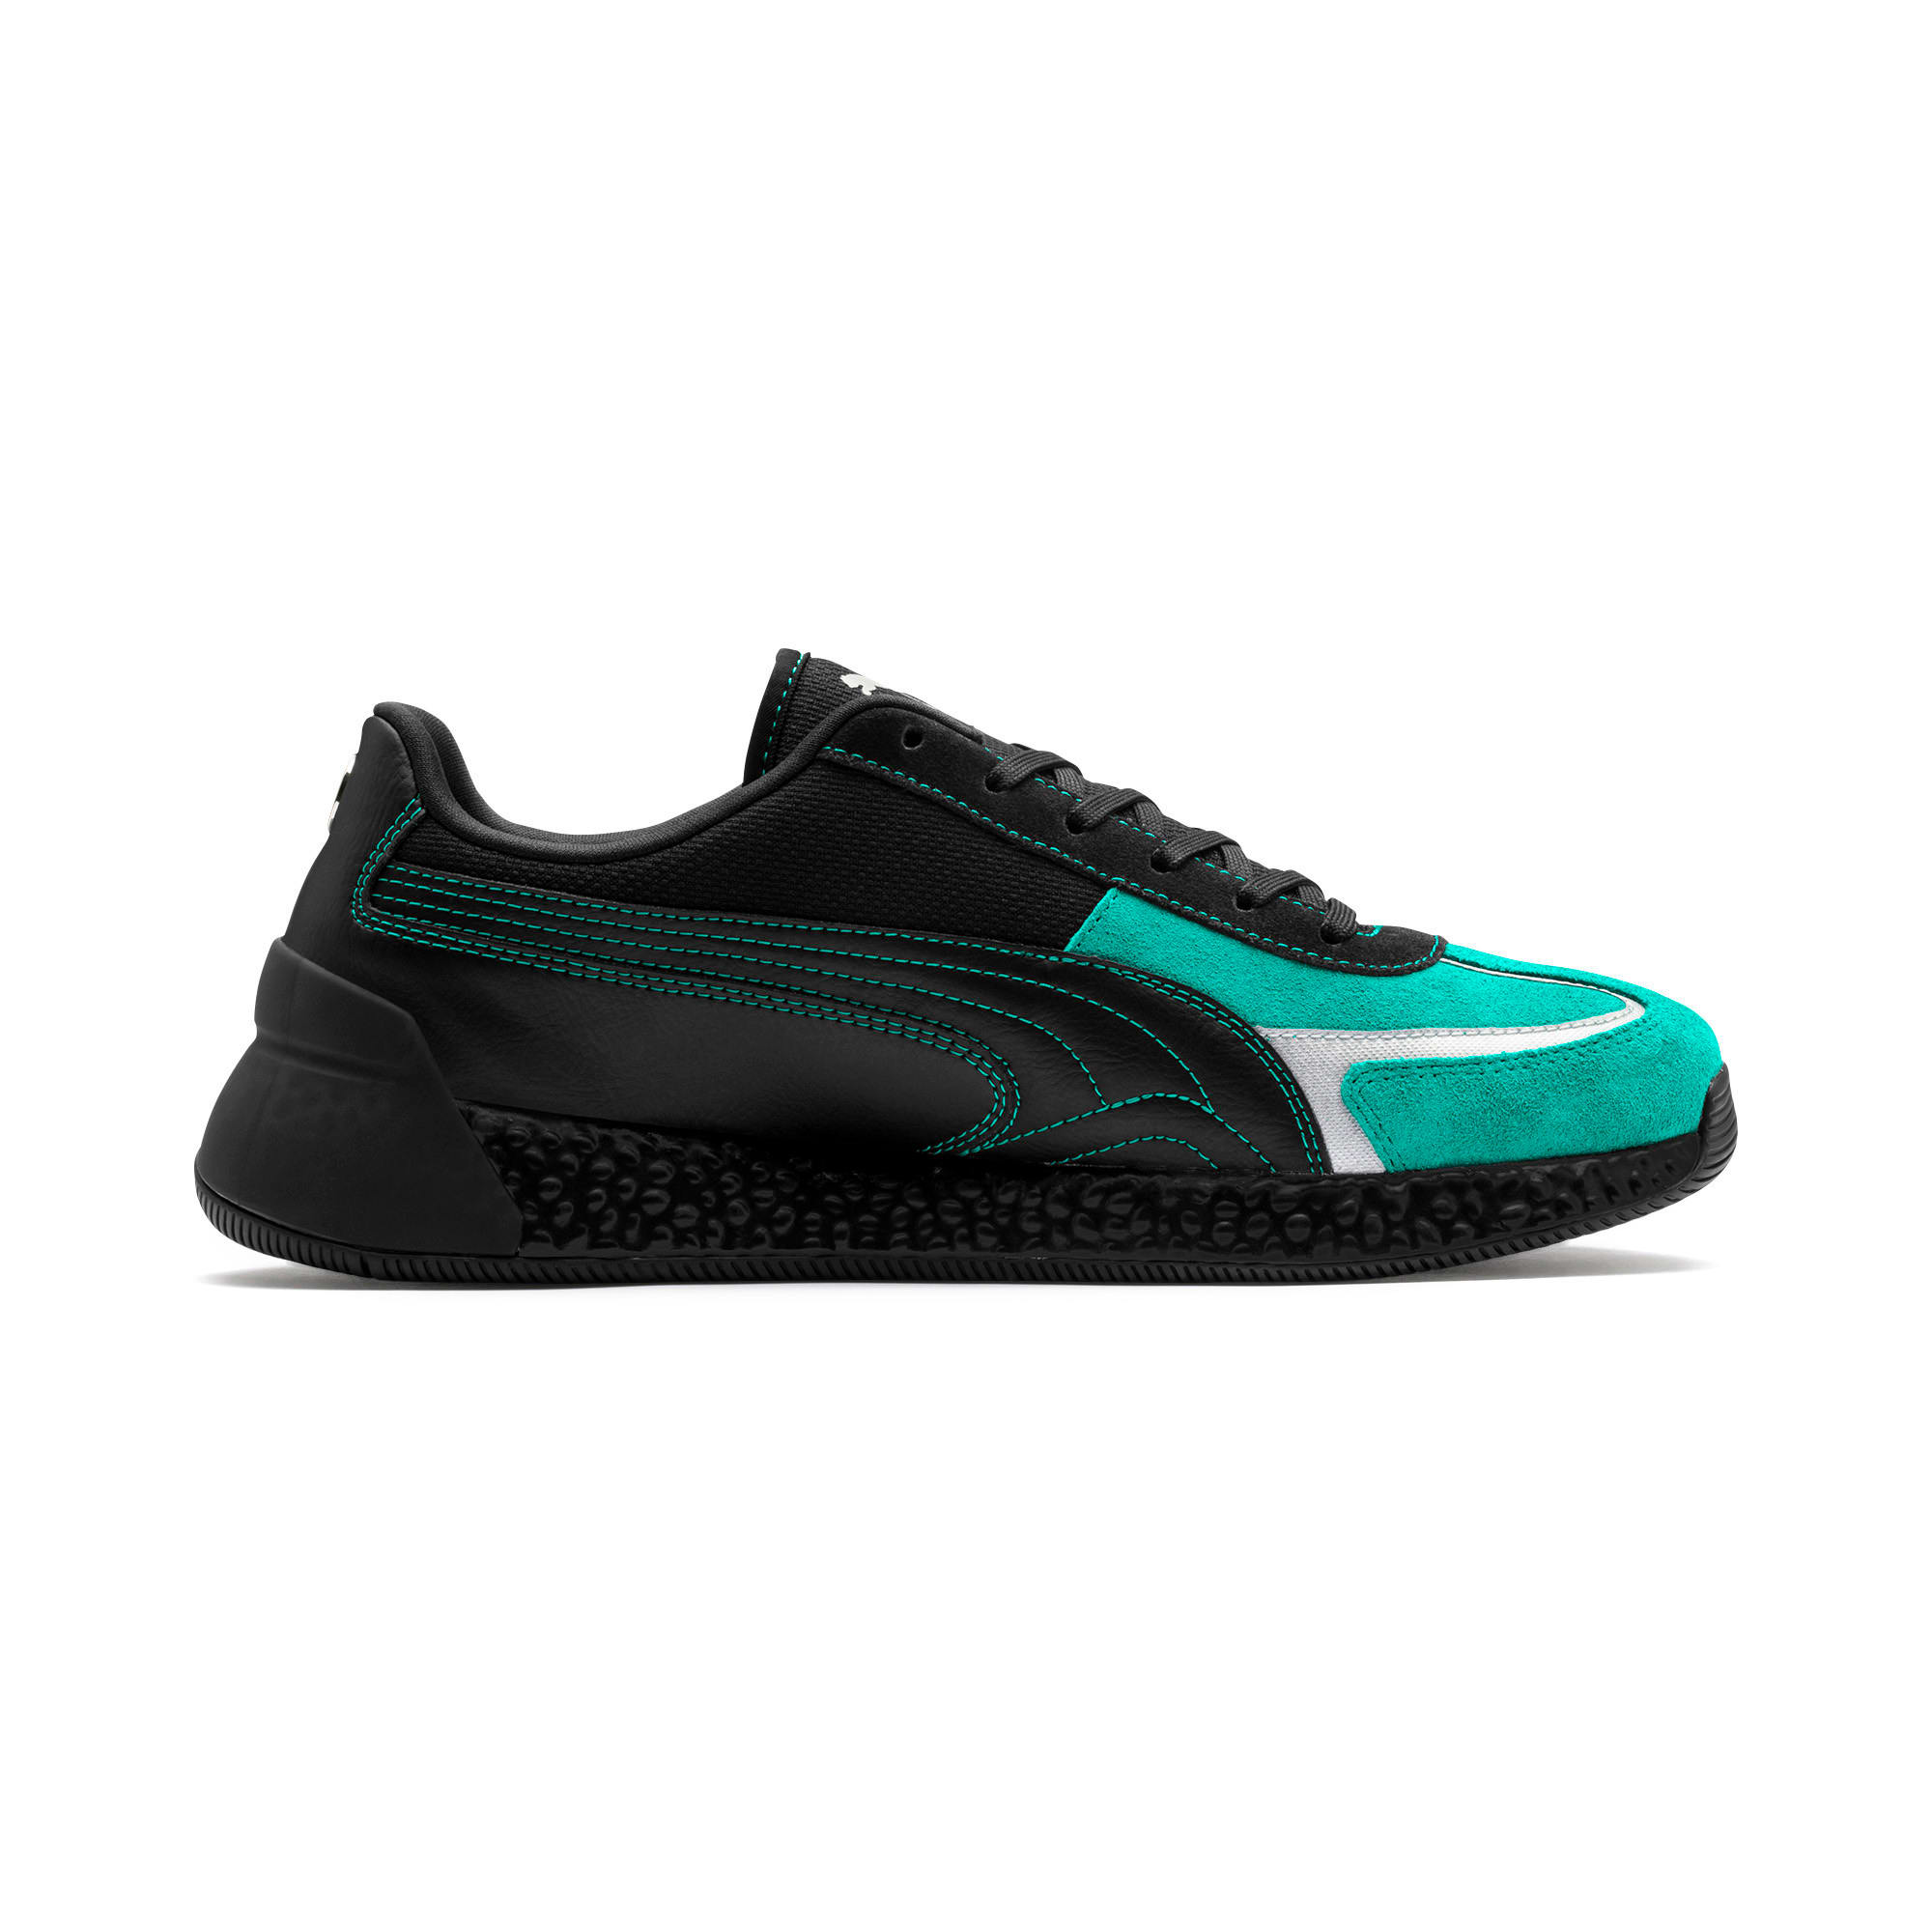 Thumbnail 6 of Mercedes AMG Petronas Speed HYBRID Running Shoes, Puma Black-Spectra Green, medium